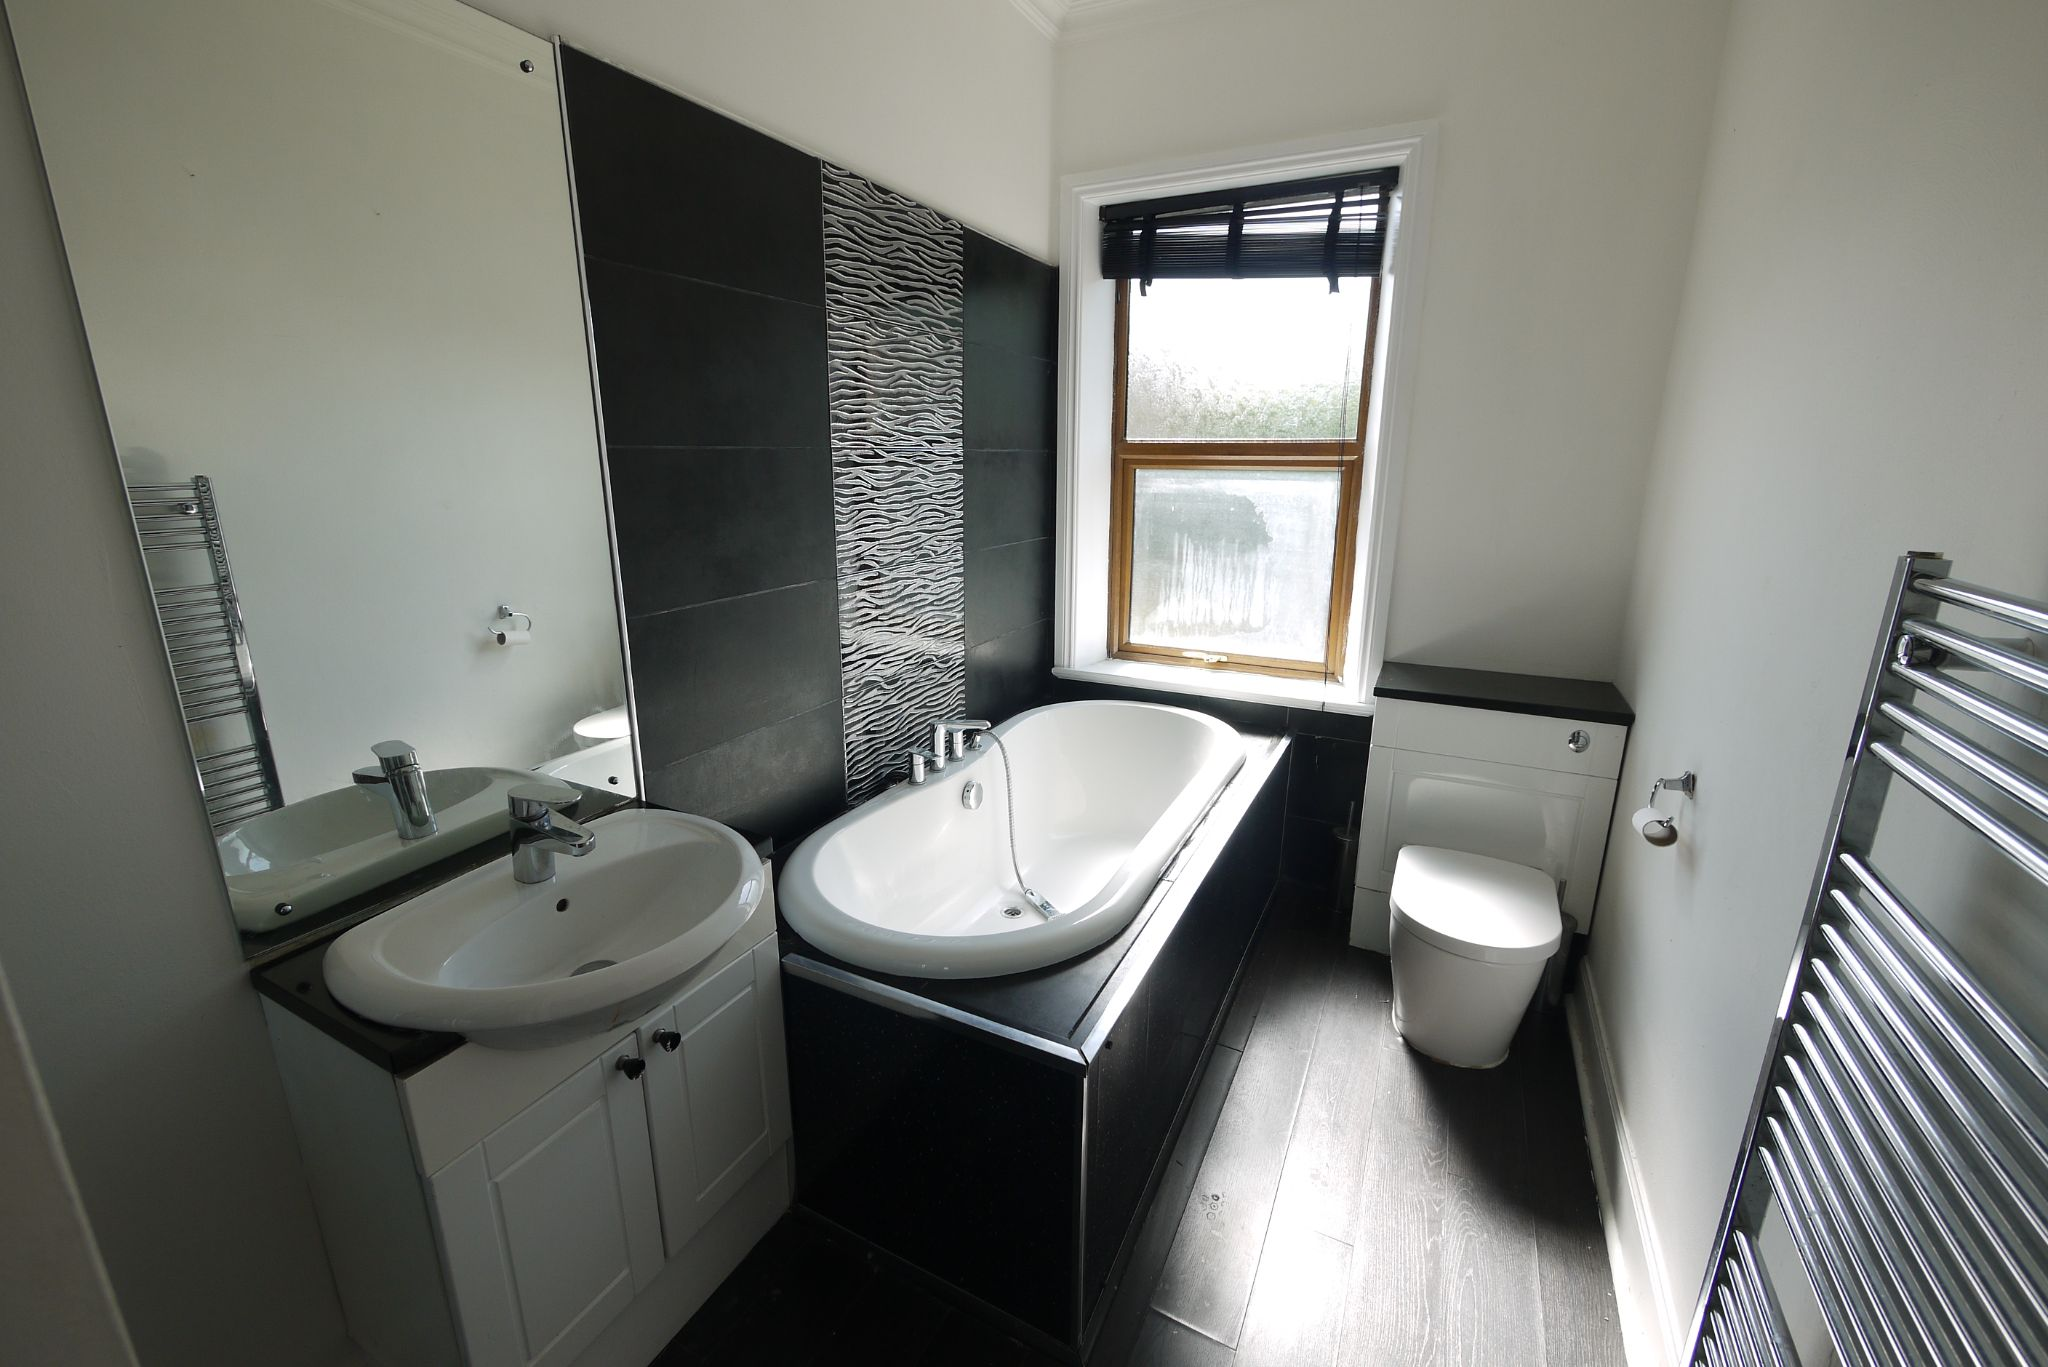 3 bedroom mid terraced house SSTC in Bradford - Photograph 10.